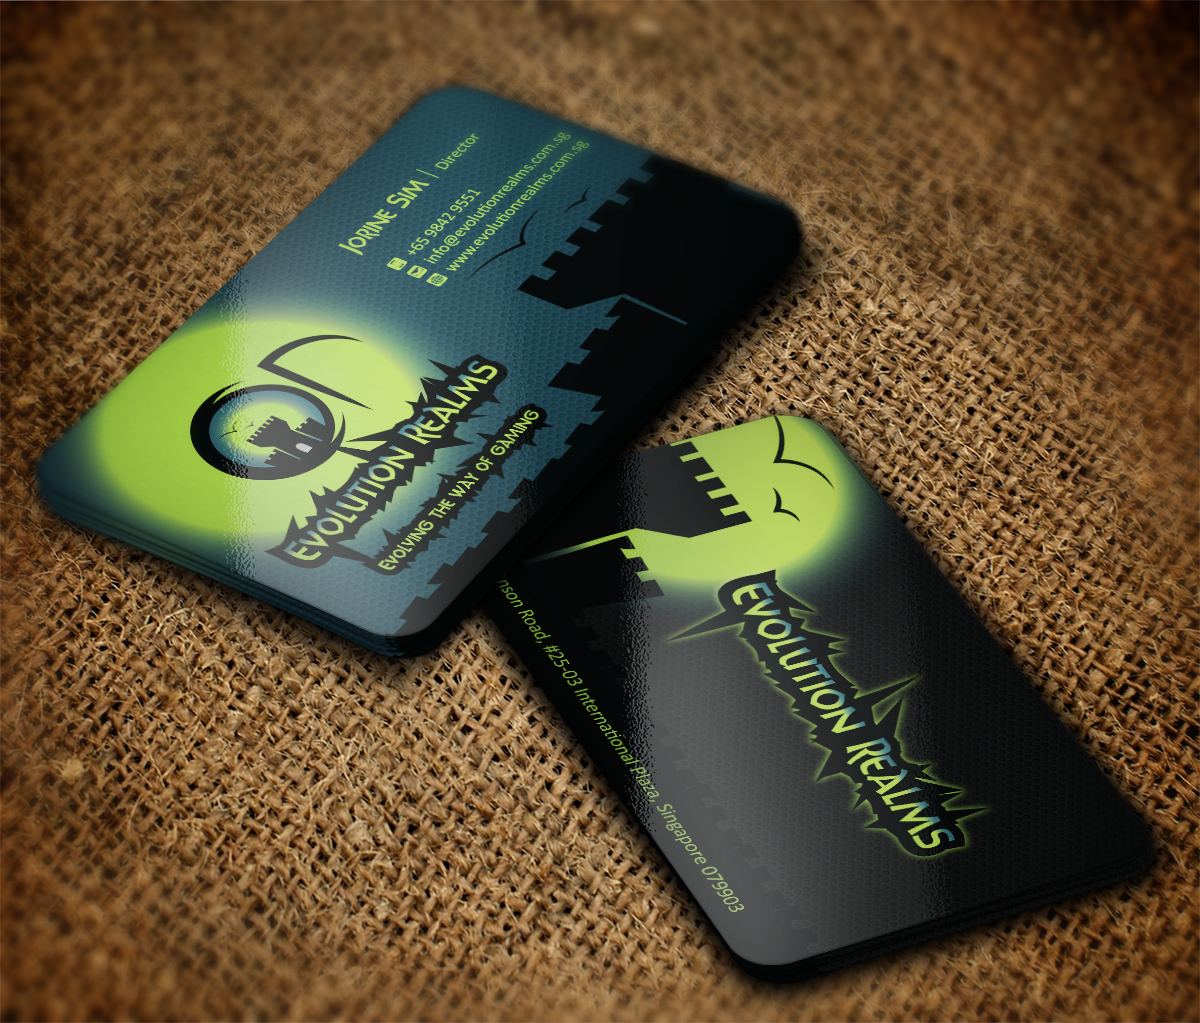 Entertainment Business Card Design for a Company by MT | Design #4398969